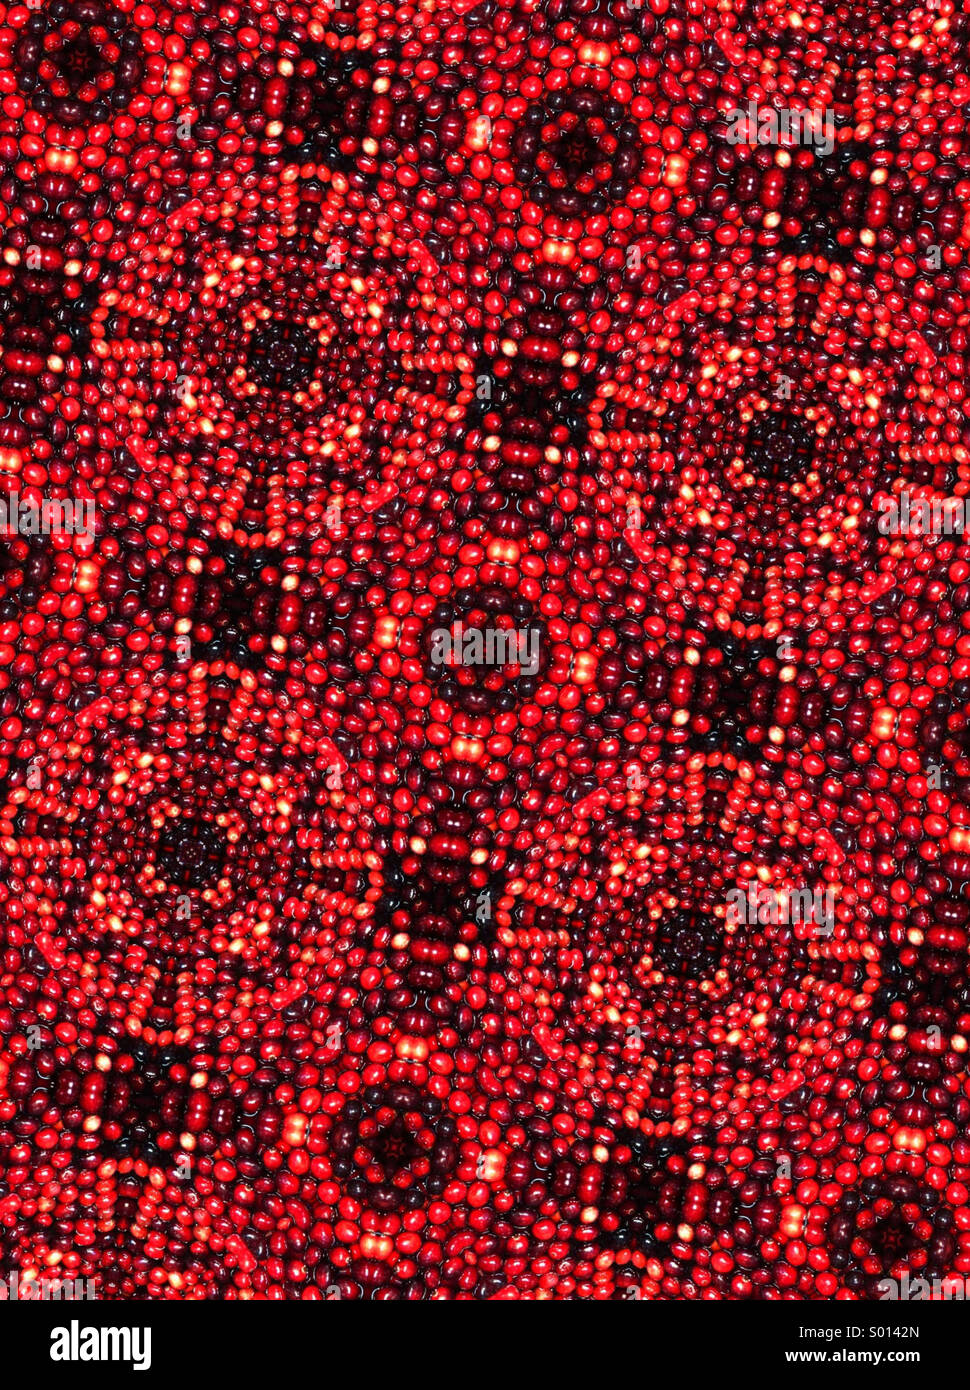 A kaleidoscope pattern made of fresh cranberries - Stock Image